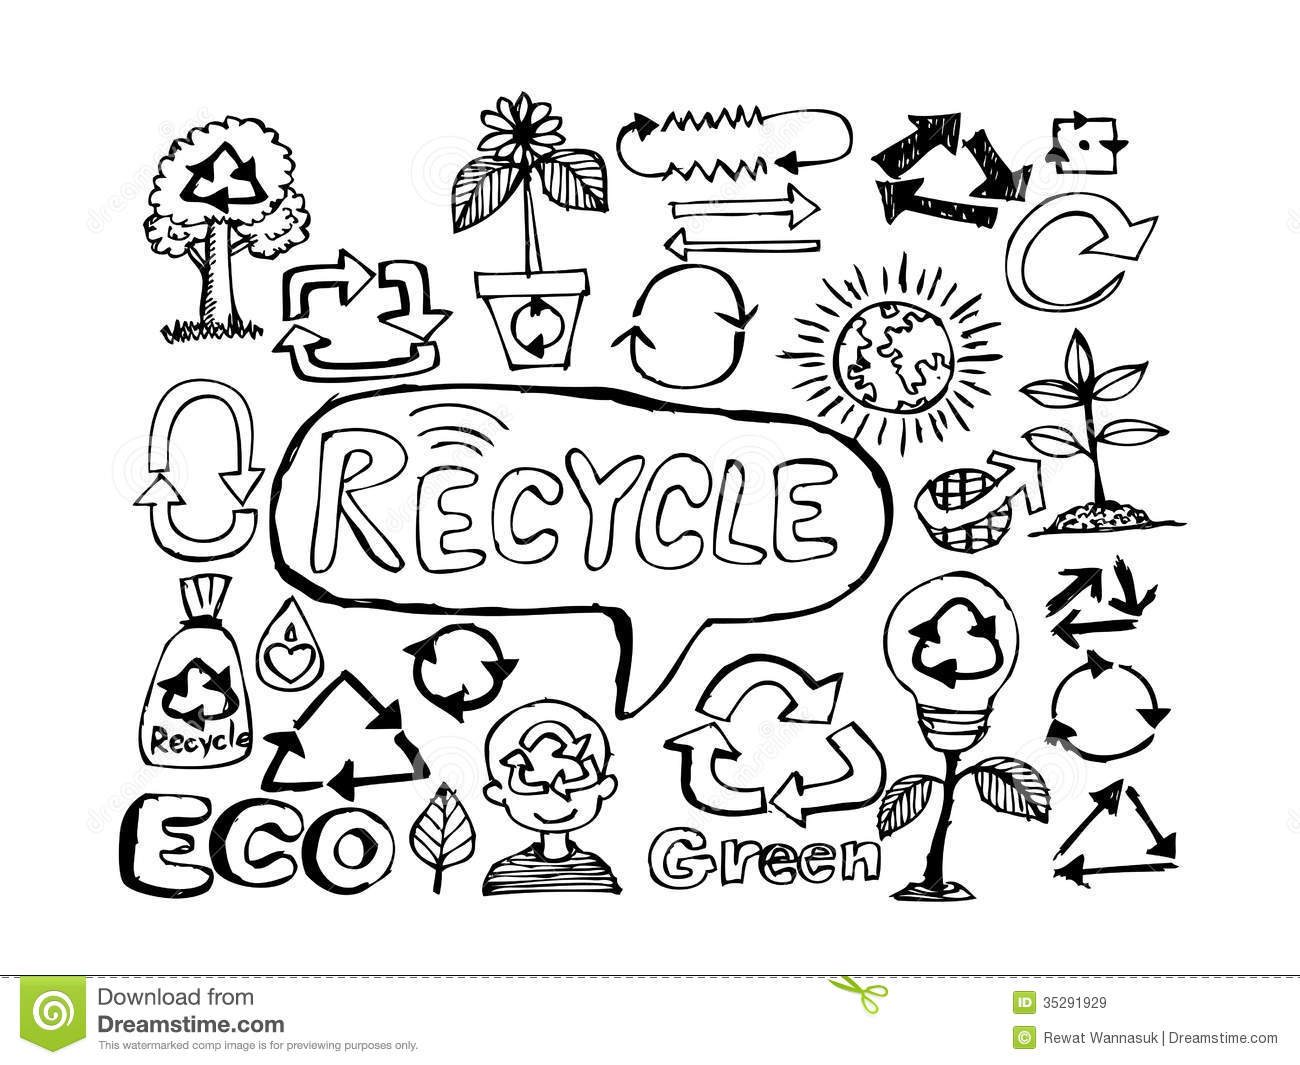 Eco Idea Sketch And Eco Friendly Doodles Royalty Free